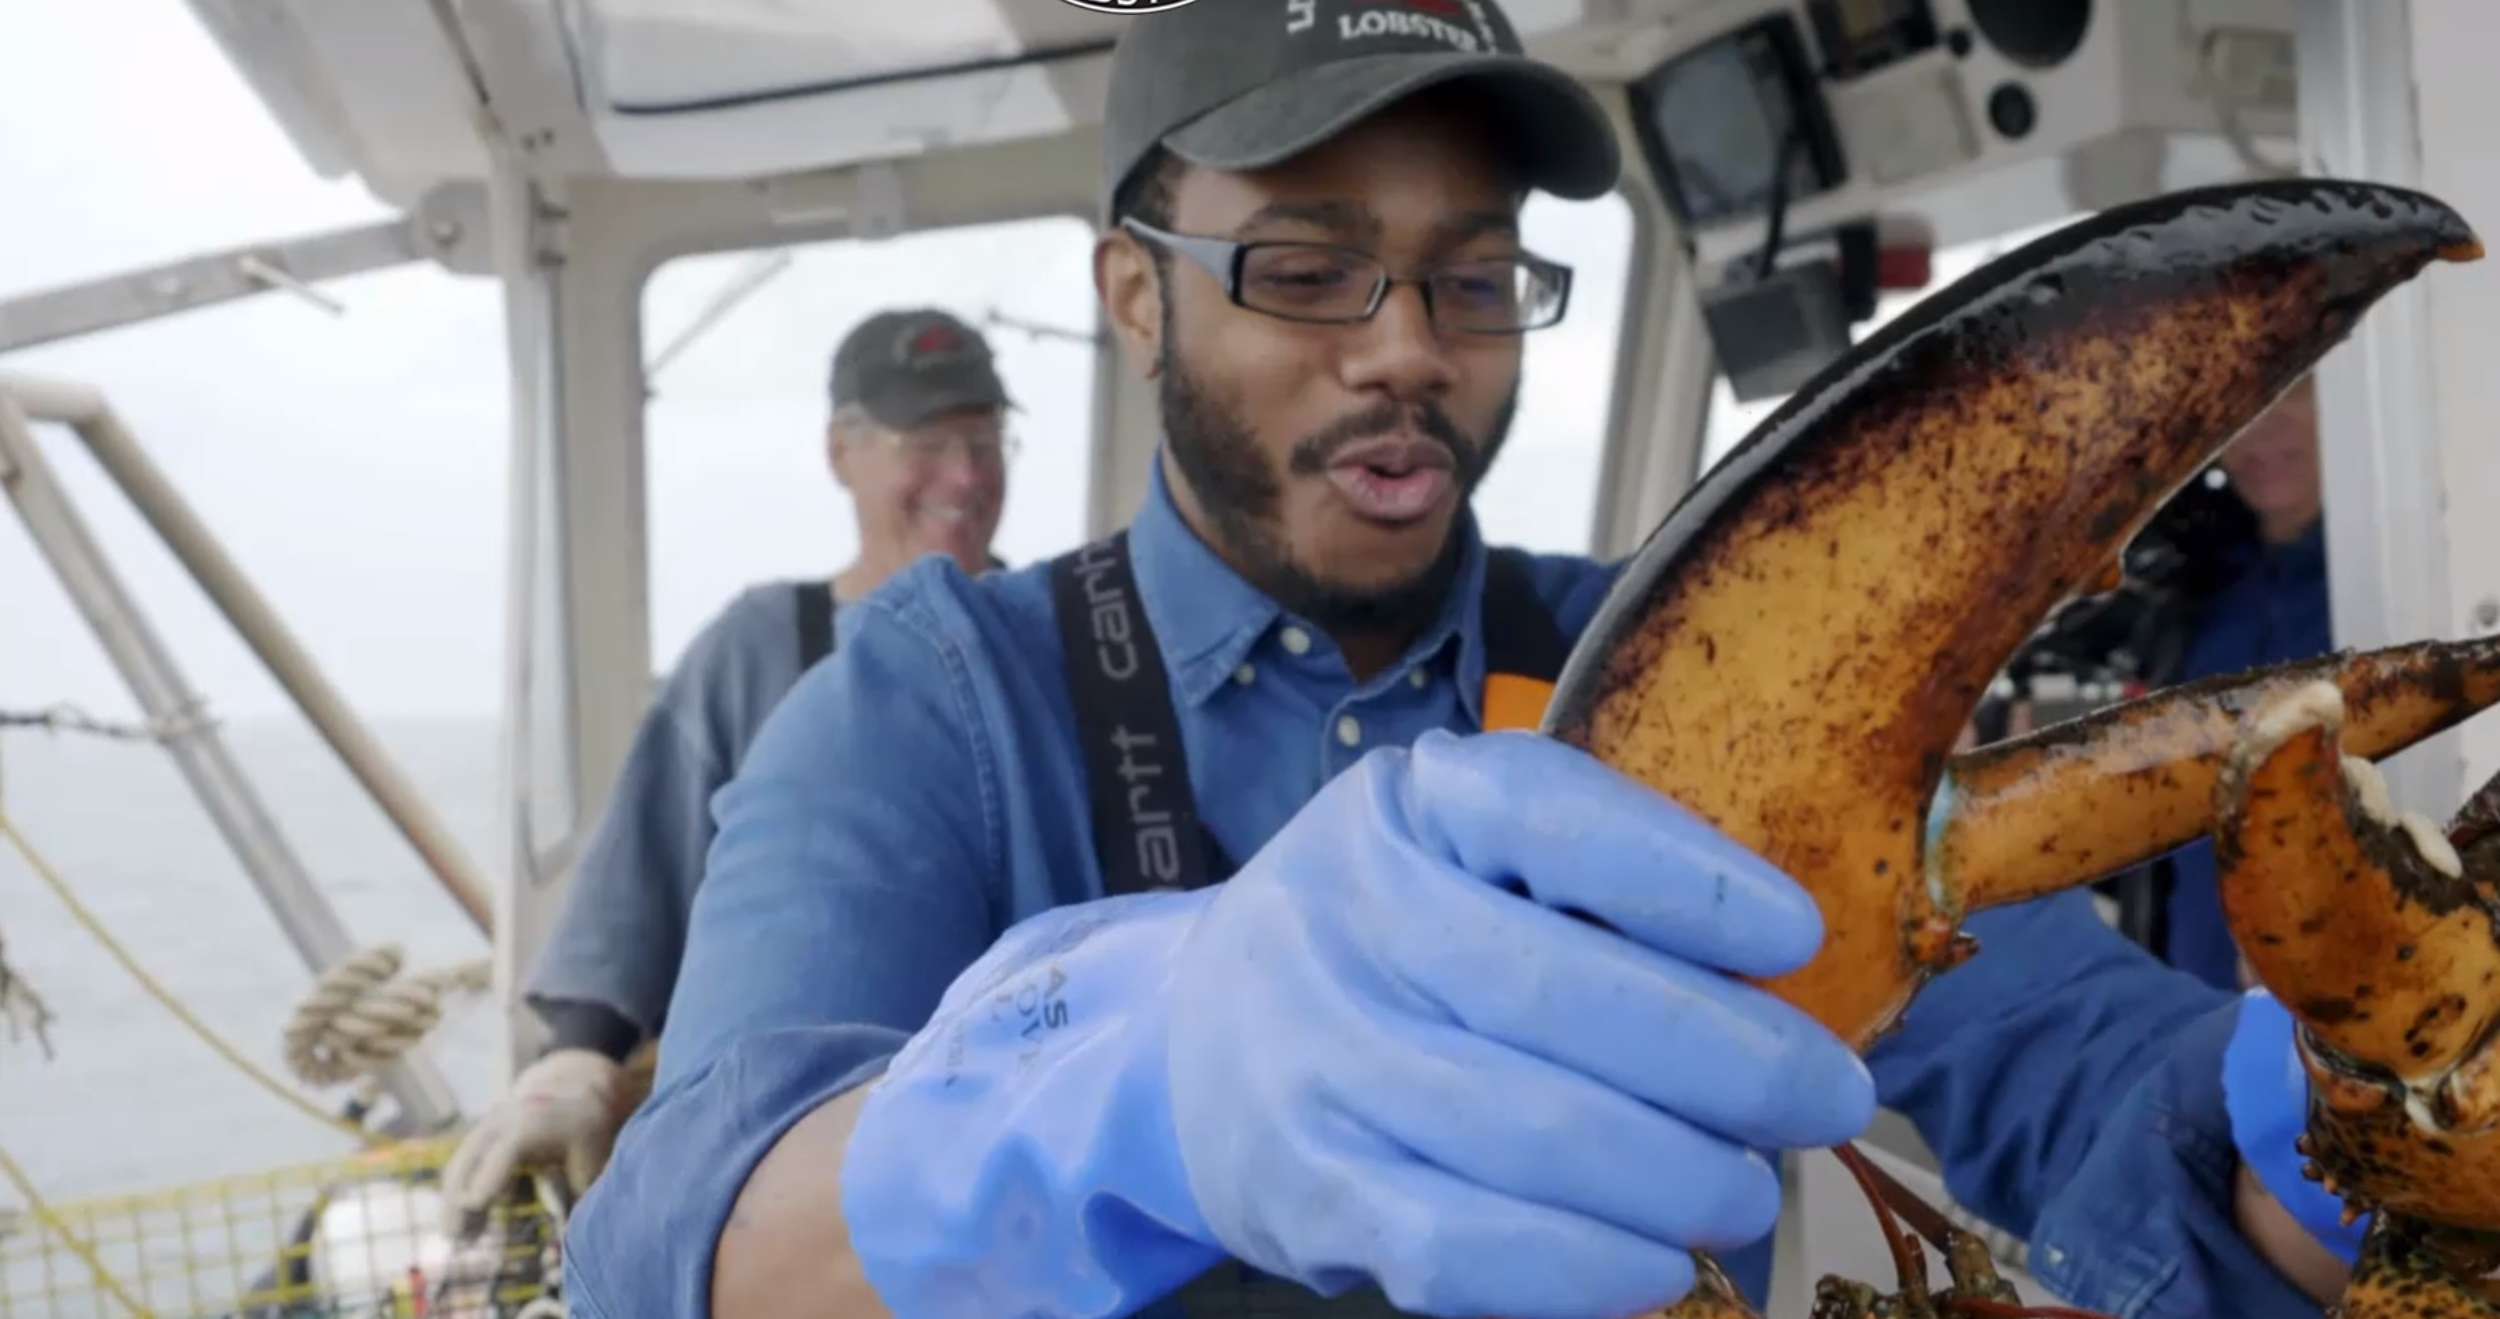 175,000 watched Maine lobster harvester, chef live-stream event | Undercurrent News